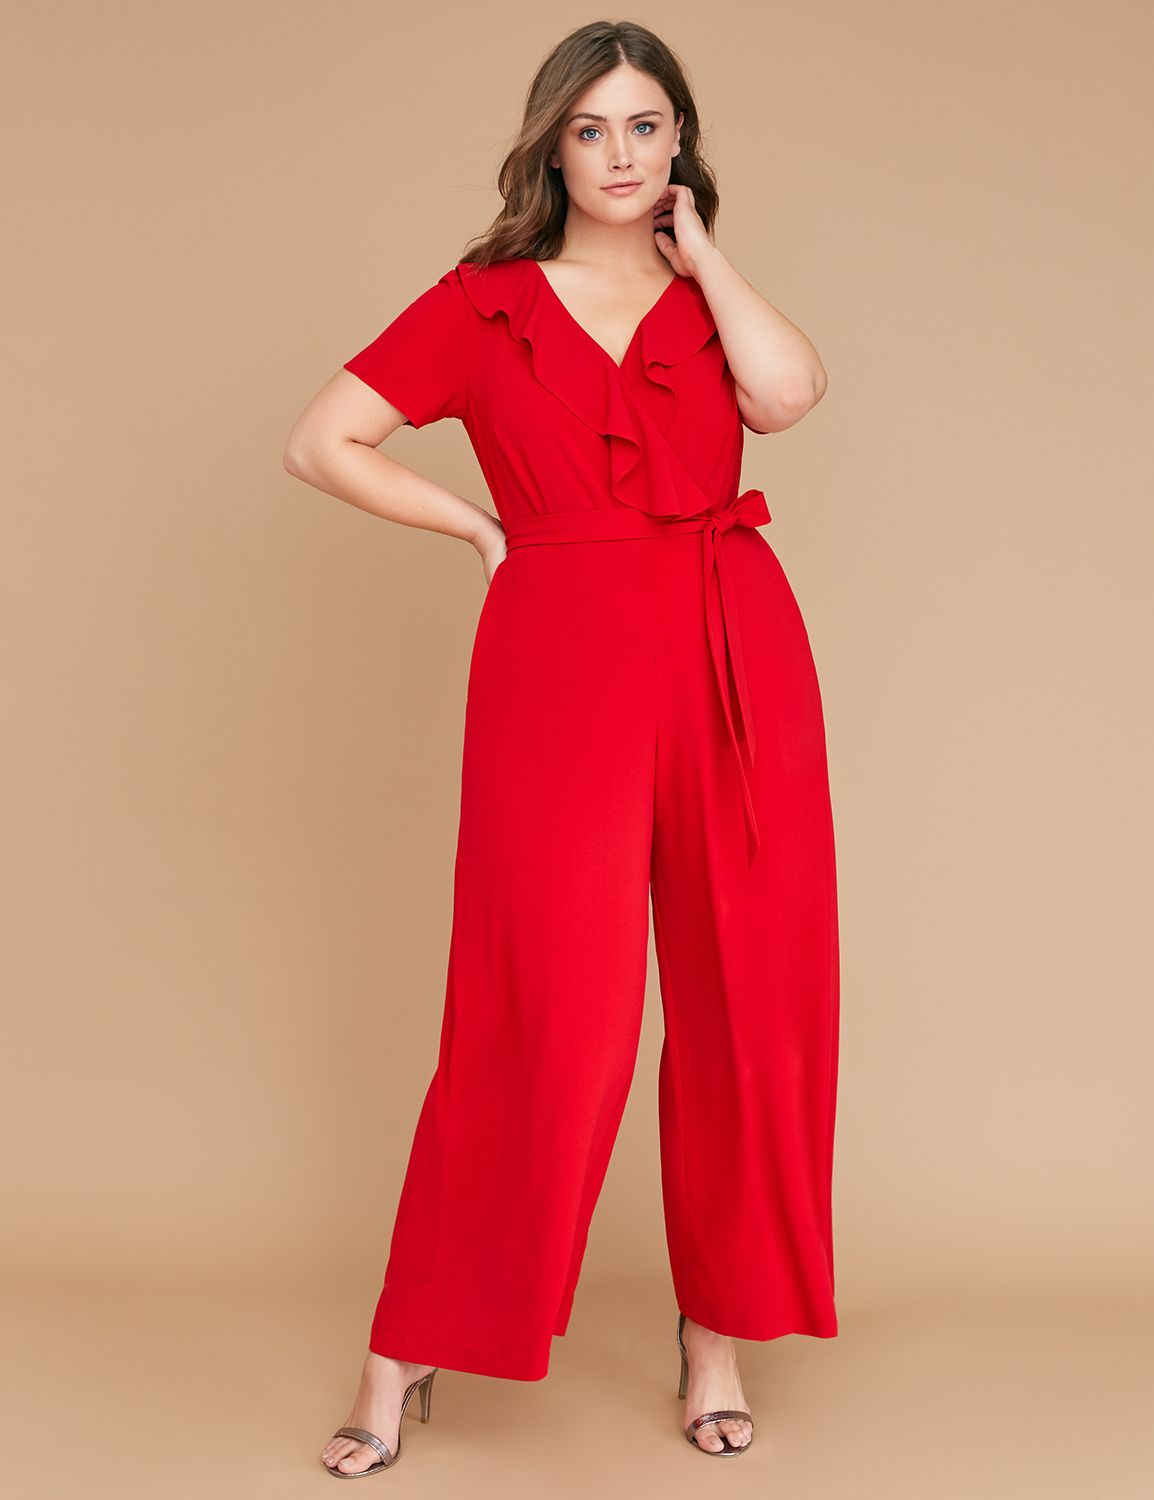 Vintage Christmas Dress | Party Dresses | Night Out Outfits Lane Bryant Womens Ruffle-Front Wide-Leg Jumpsuit 26 Venetian Red $70.99 AT vintagedancer.com